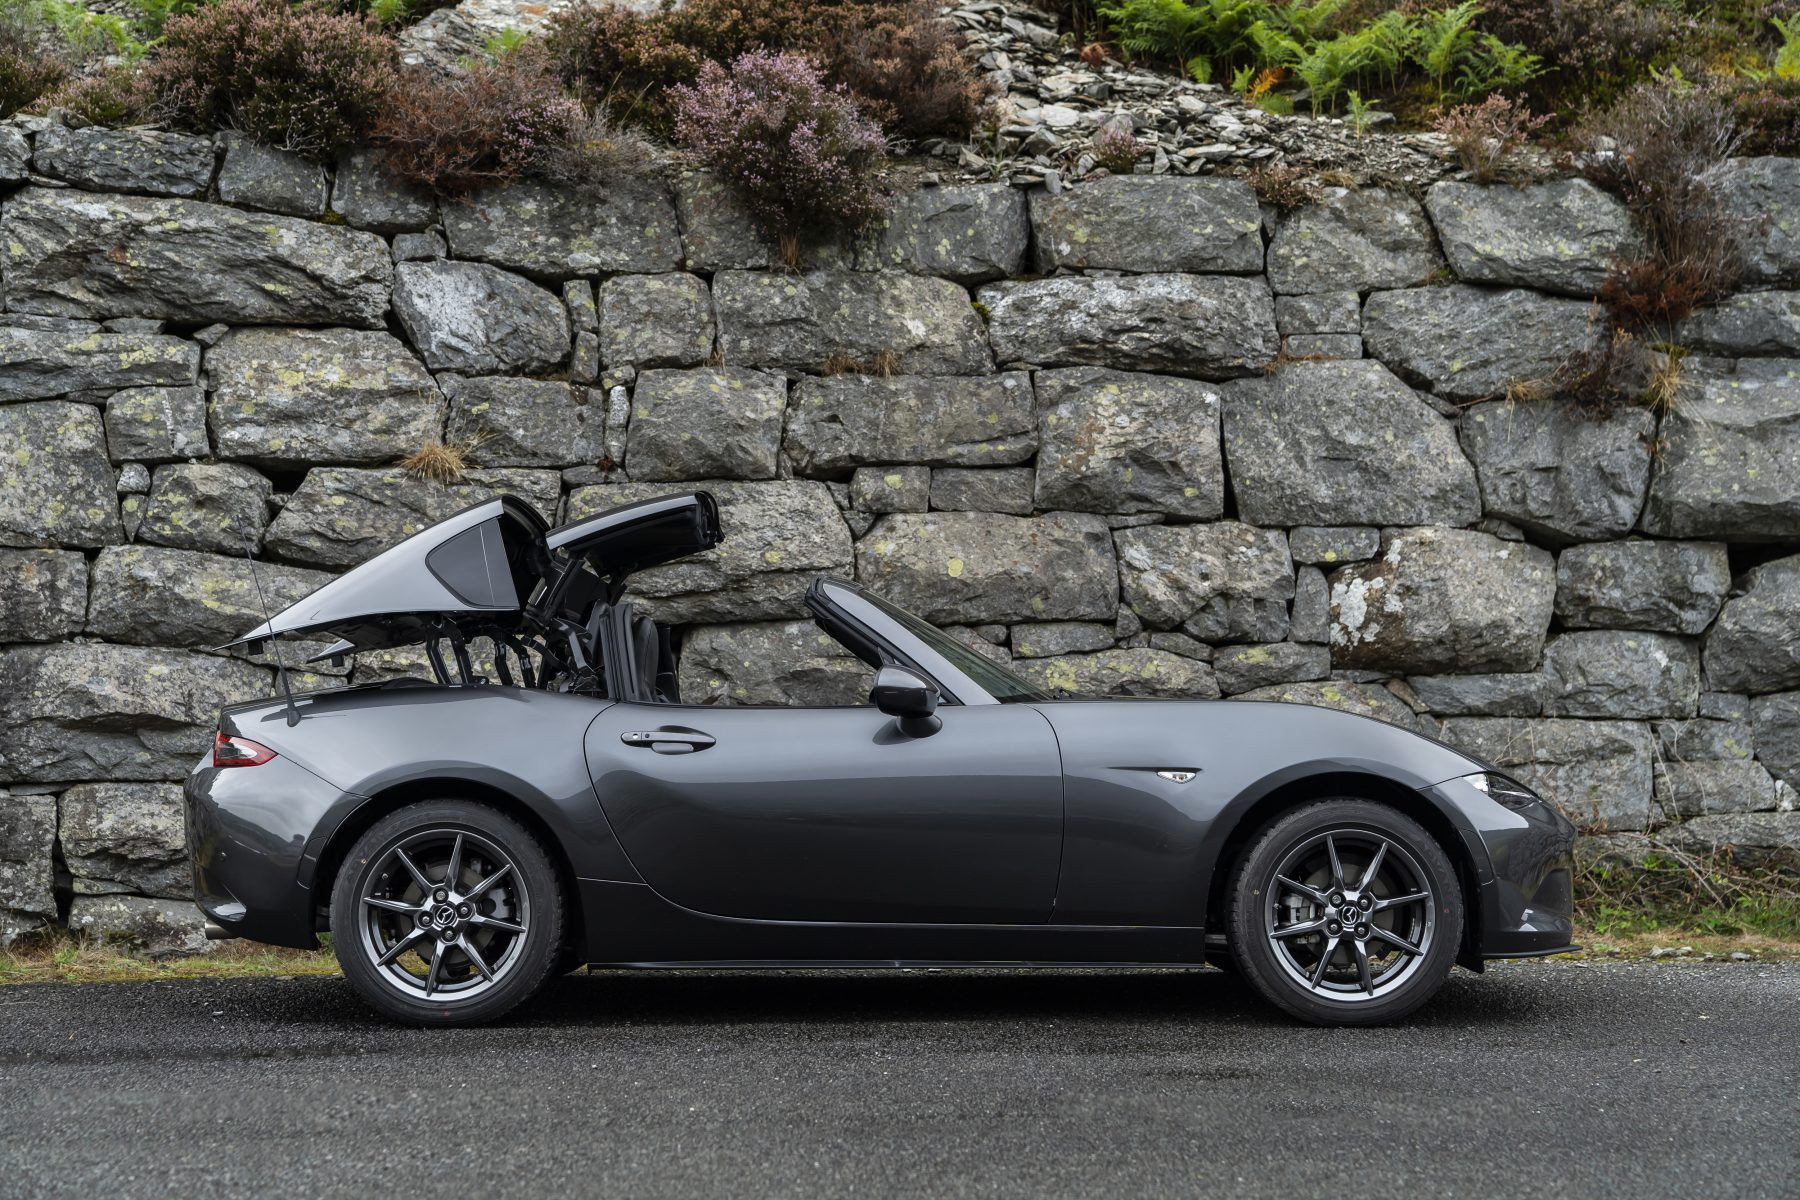 Side view of grey Mazda MX-5 RF with the roof being folded down